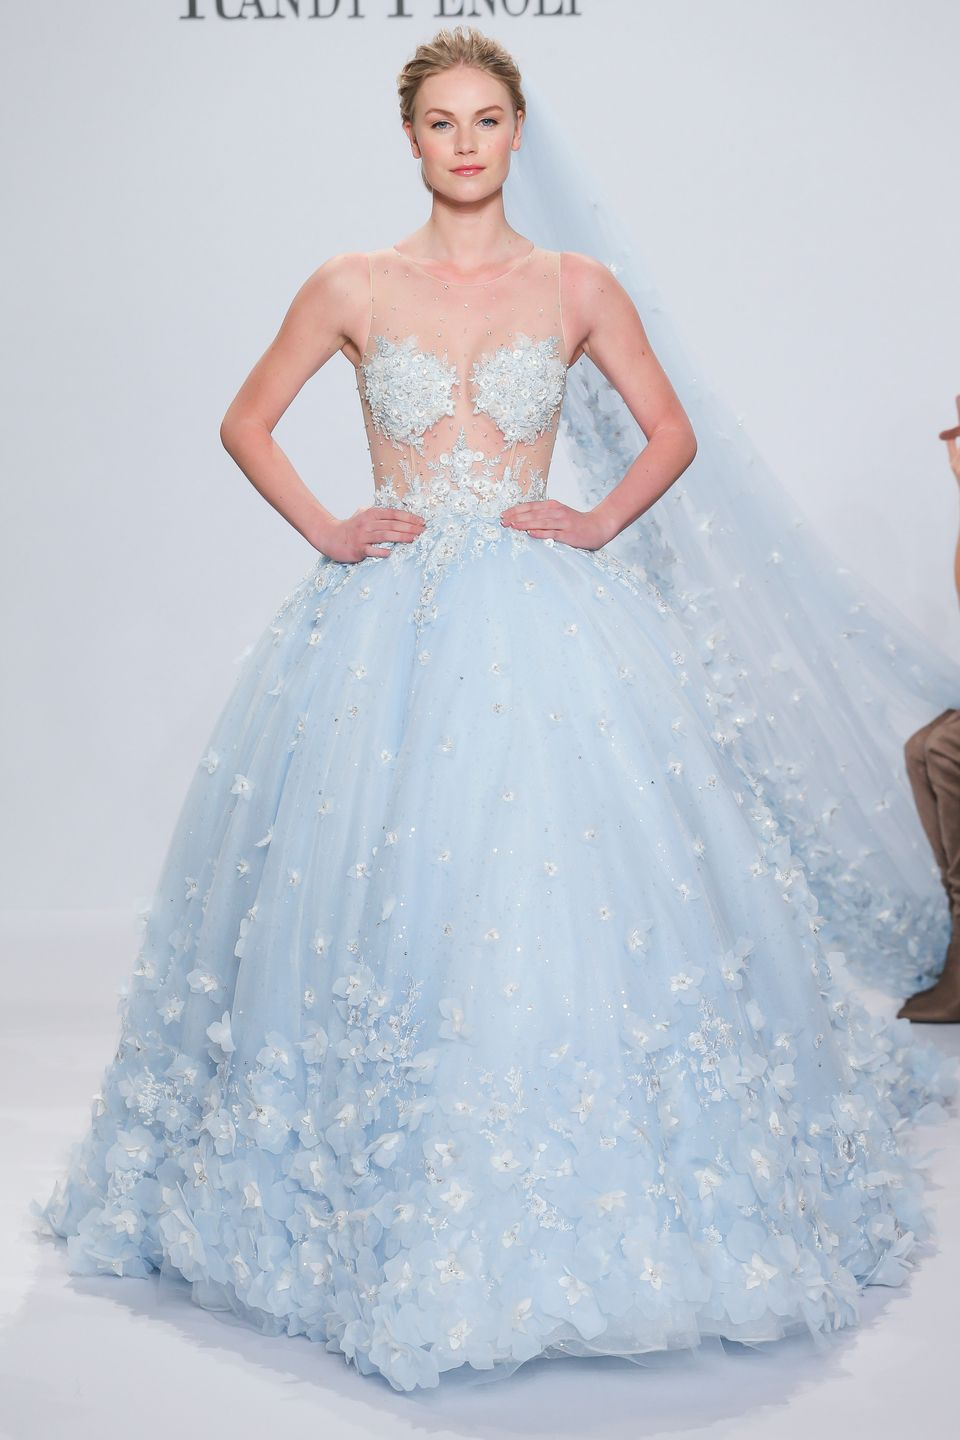 31 Non White Wedding Dresses For Brides Who Color Outside The Lines